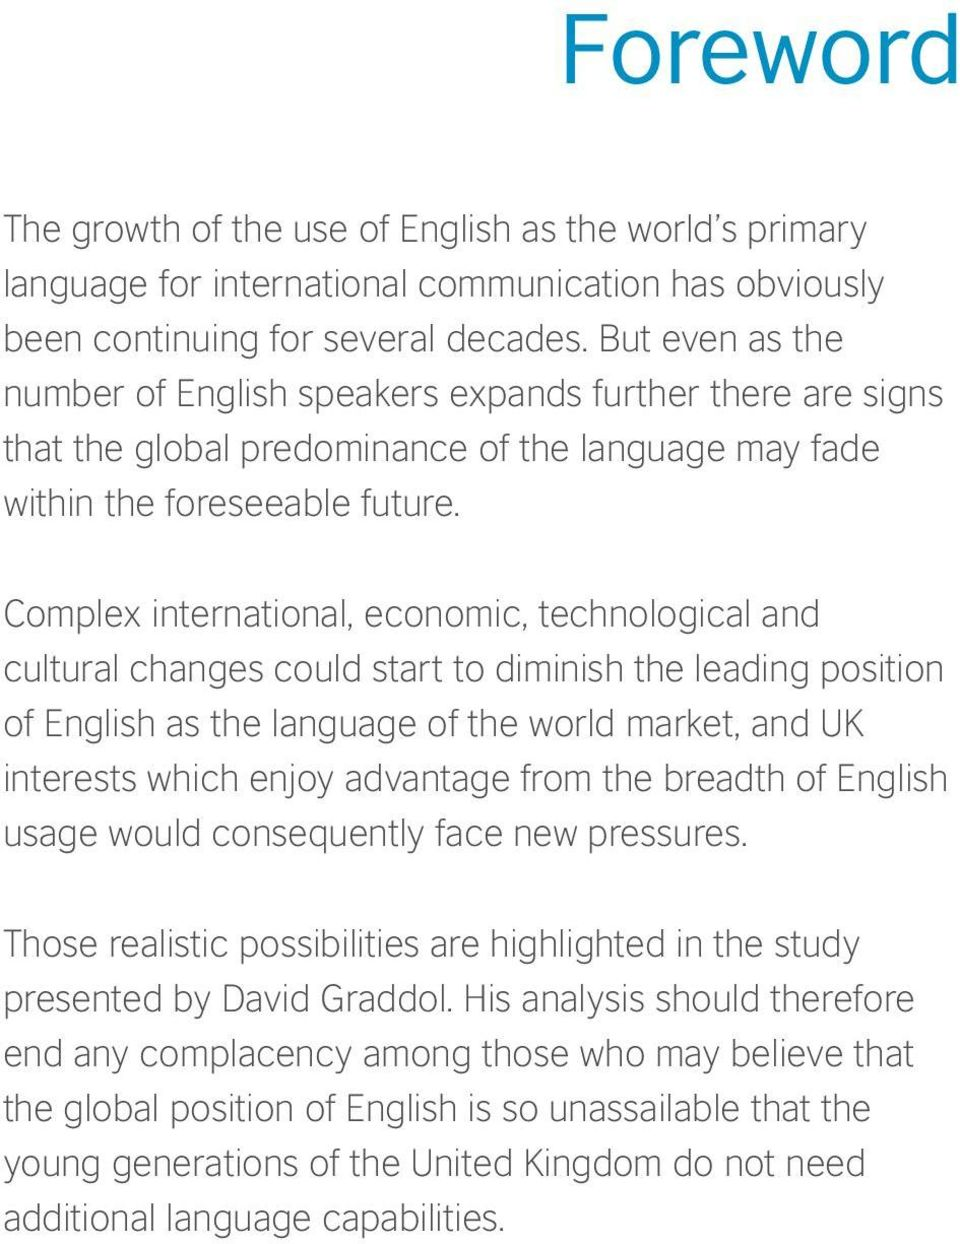 Complex international, economic, technological and cultural changes could start to diminish the leading position of English as the language of the world market, and UK interests which enjoy advantage